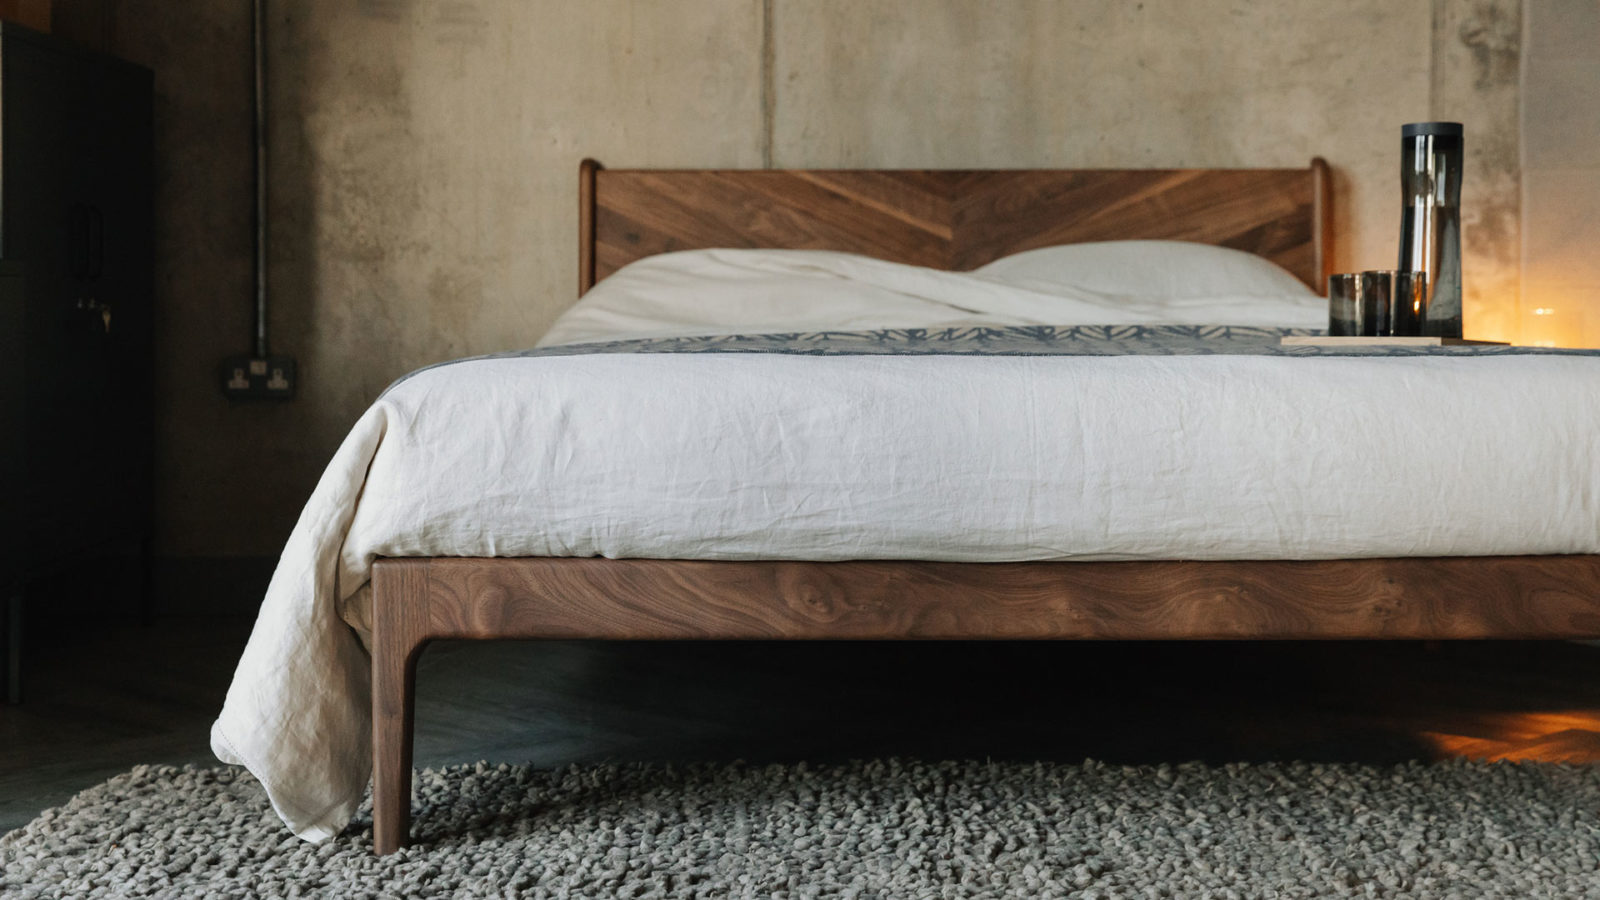 Hoxton bed in solid walnut with linen bedding